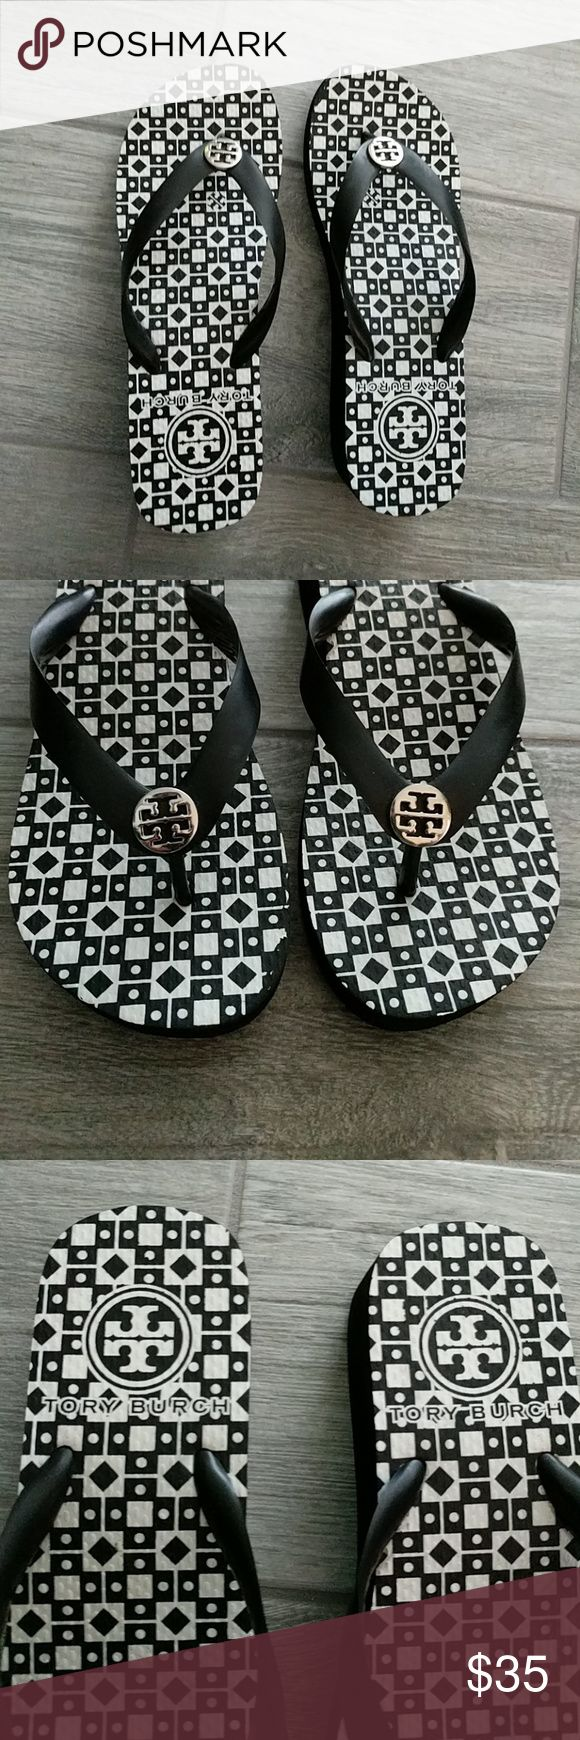 Tory Burch black wedge flip flop sandals 7.5 Tory Burch black wedge flip flop sandals no size marked but fit like a 7.5, EUC. Tory Burch Shoes Sandals